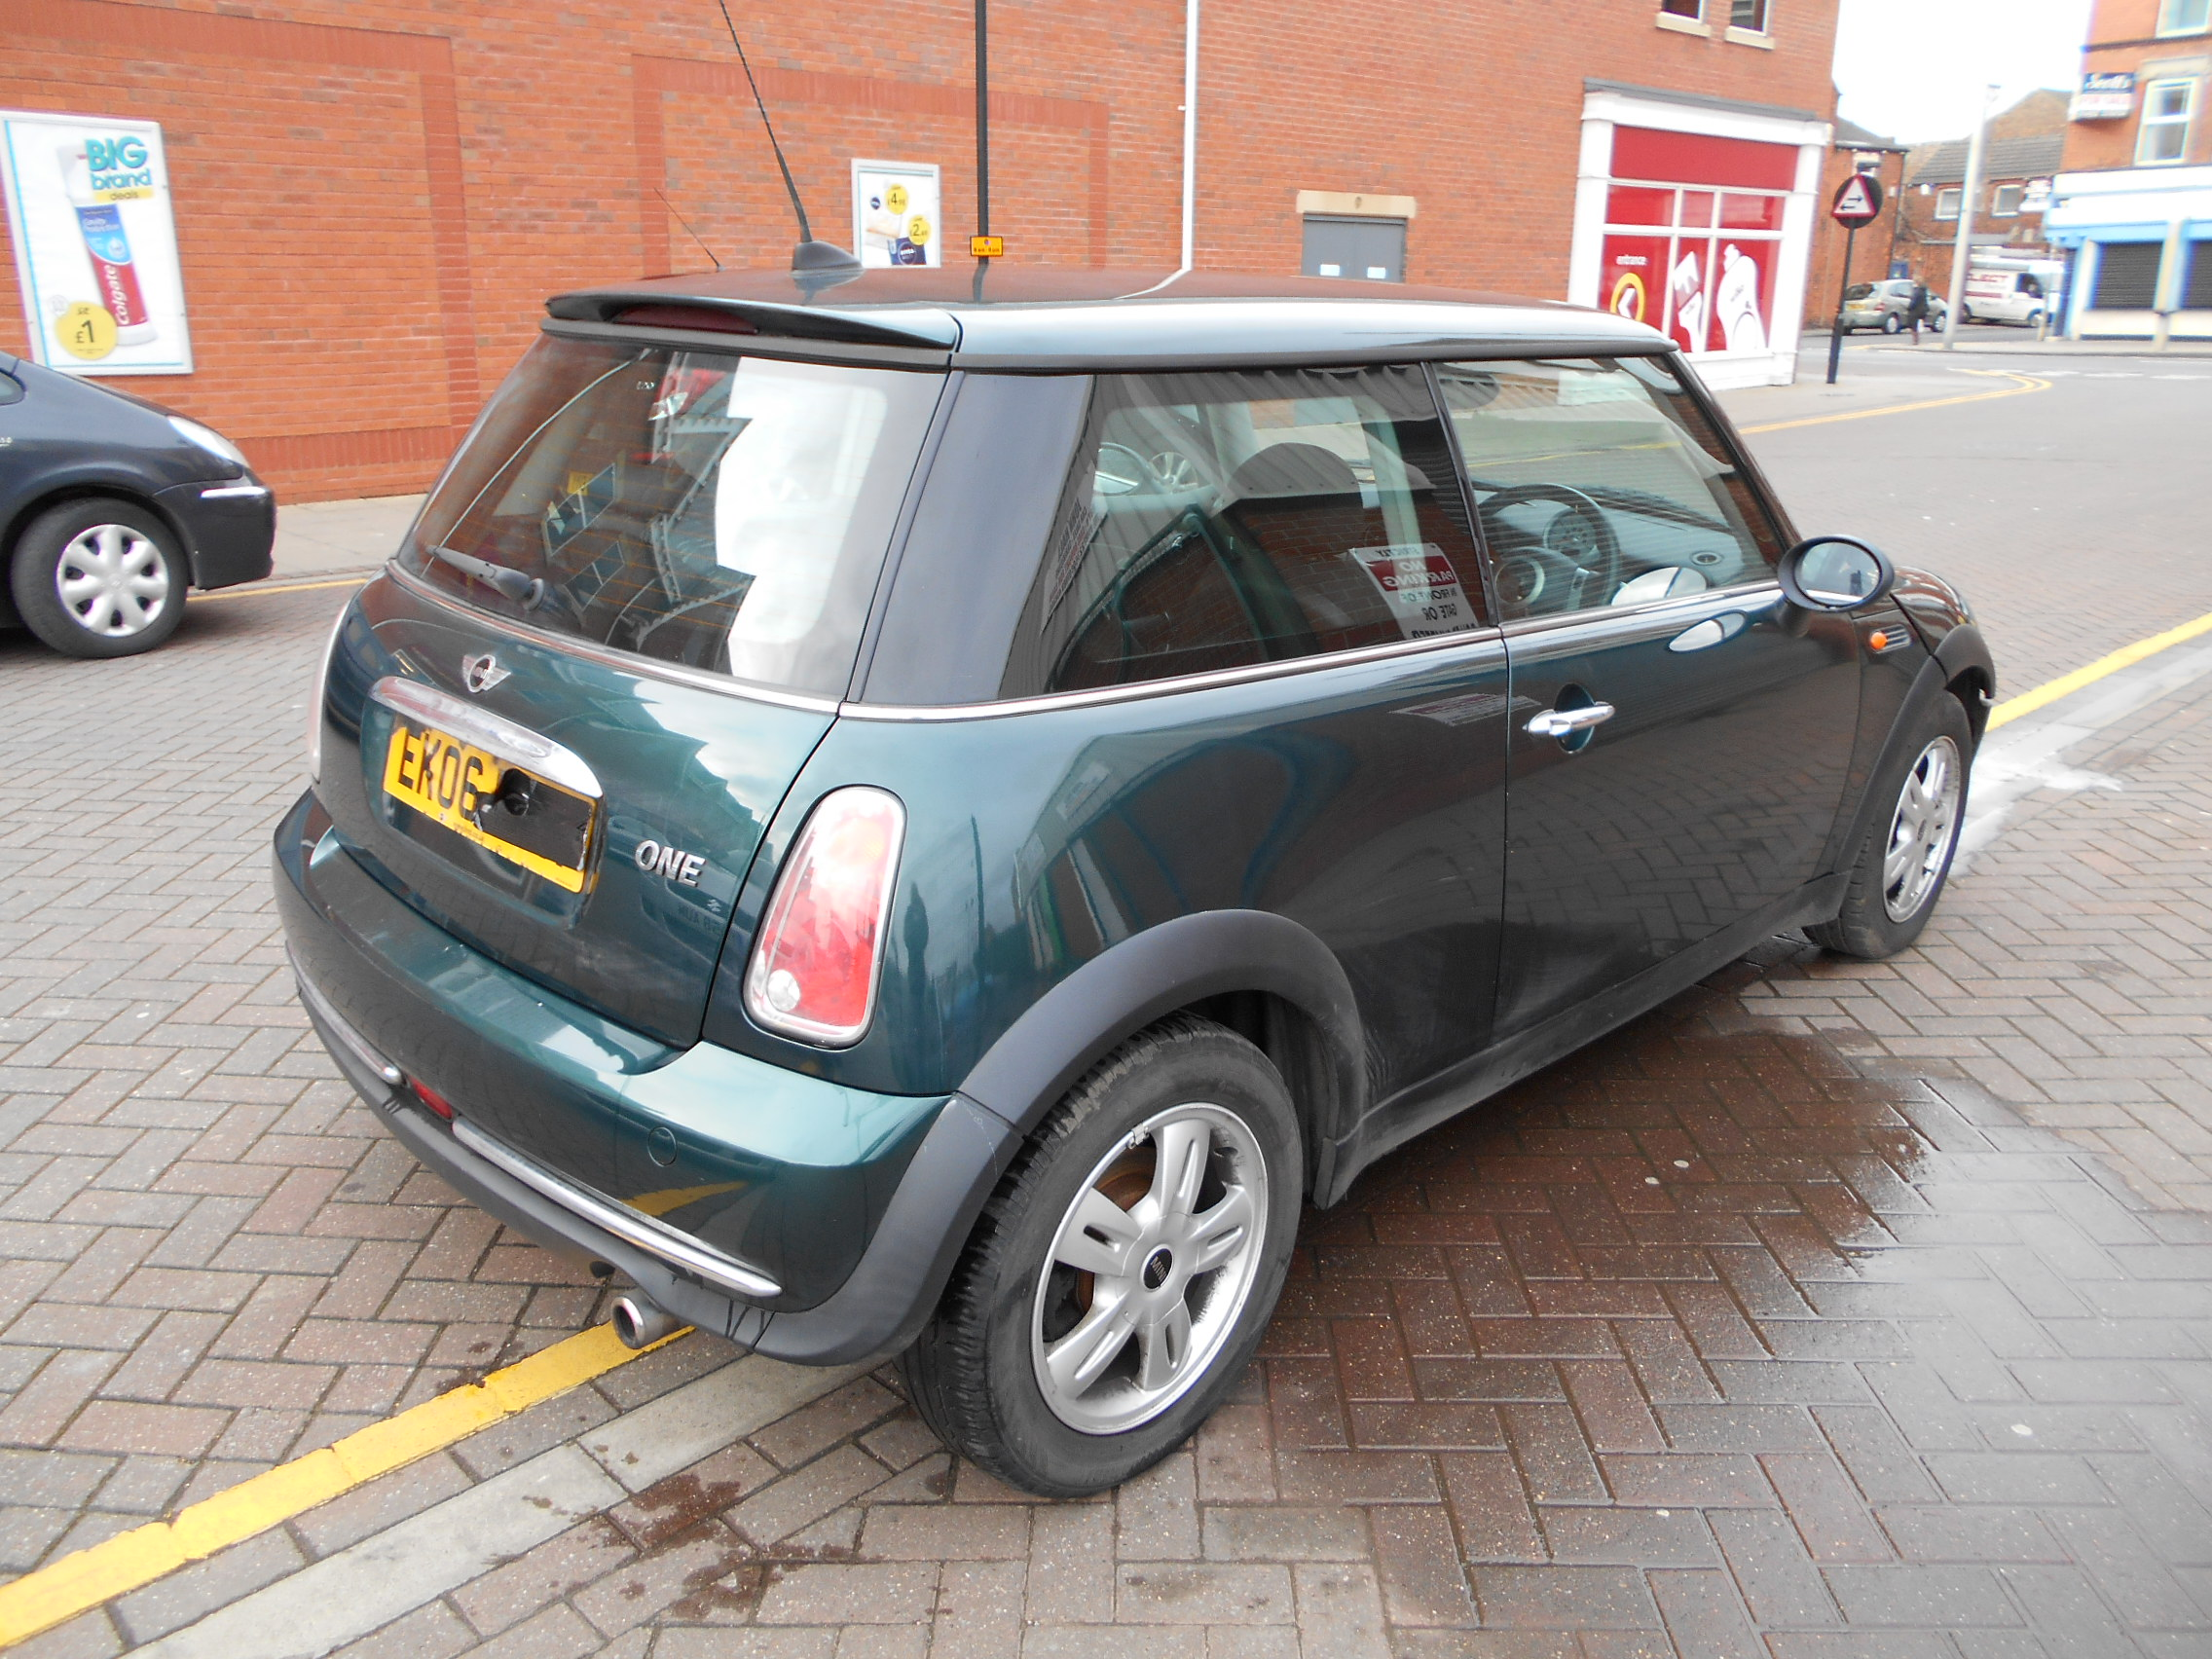 06 Green 1.6 BMW Mini One - 4